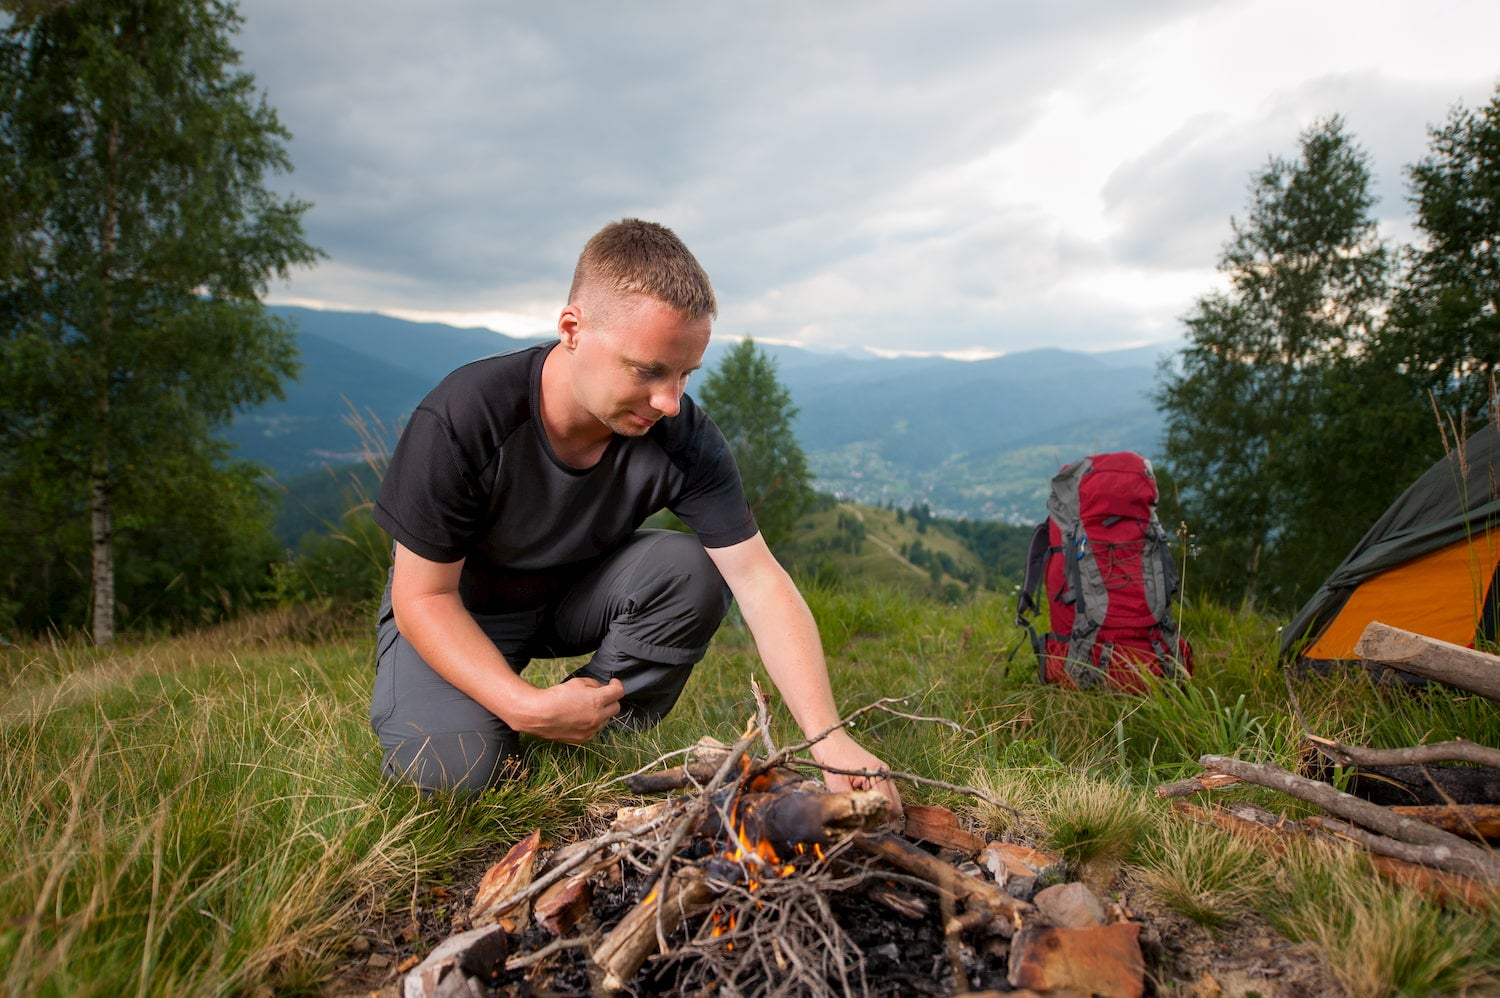 young man tourist kindling campfire on the hill with tent and travel backpack in background